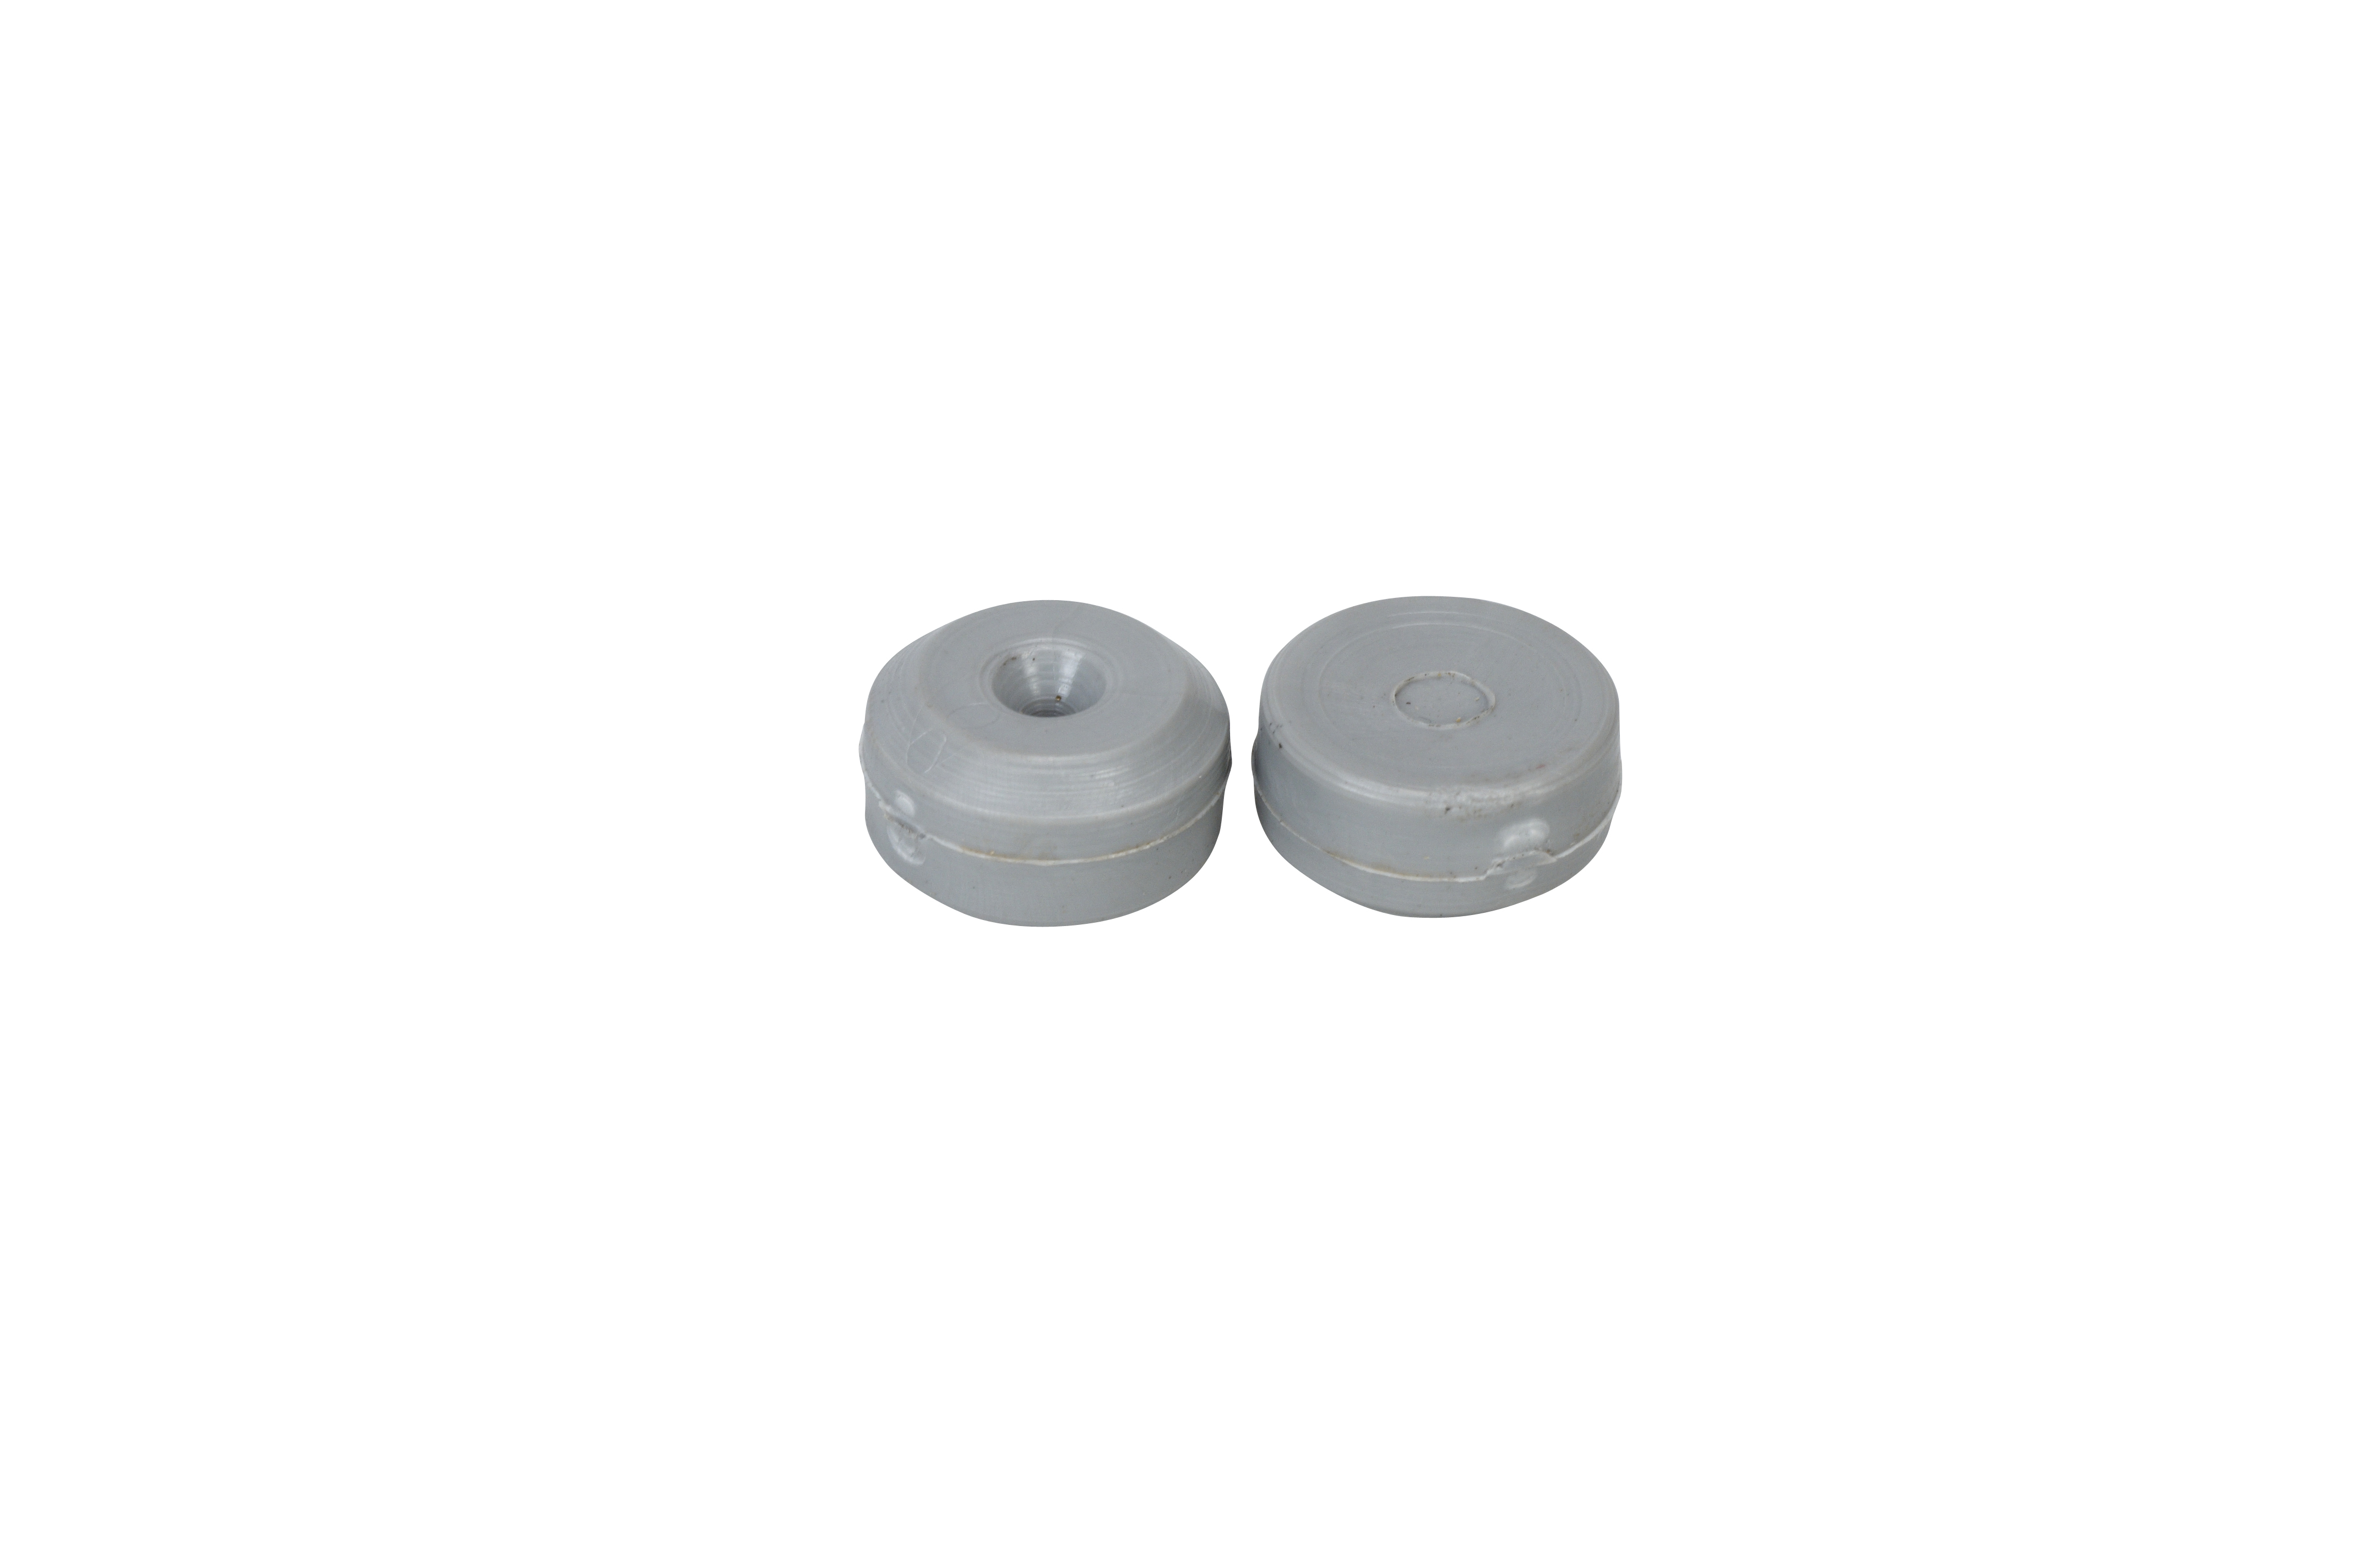 Rubber stud for dog mouth gag 270940 and 270950, 2/pk